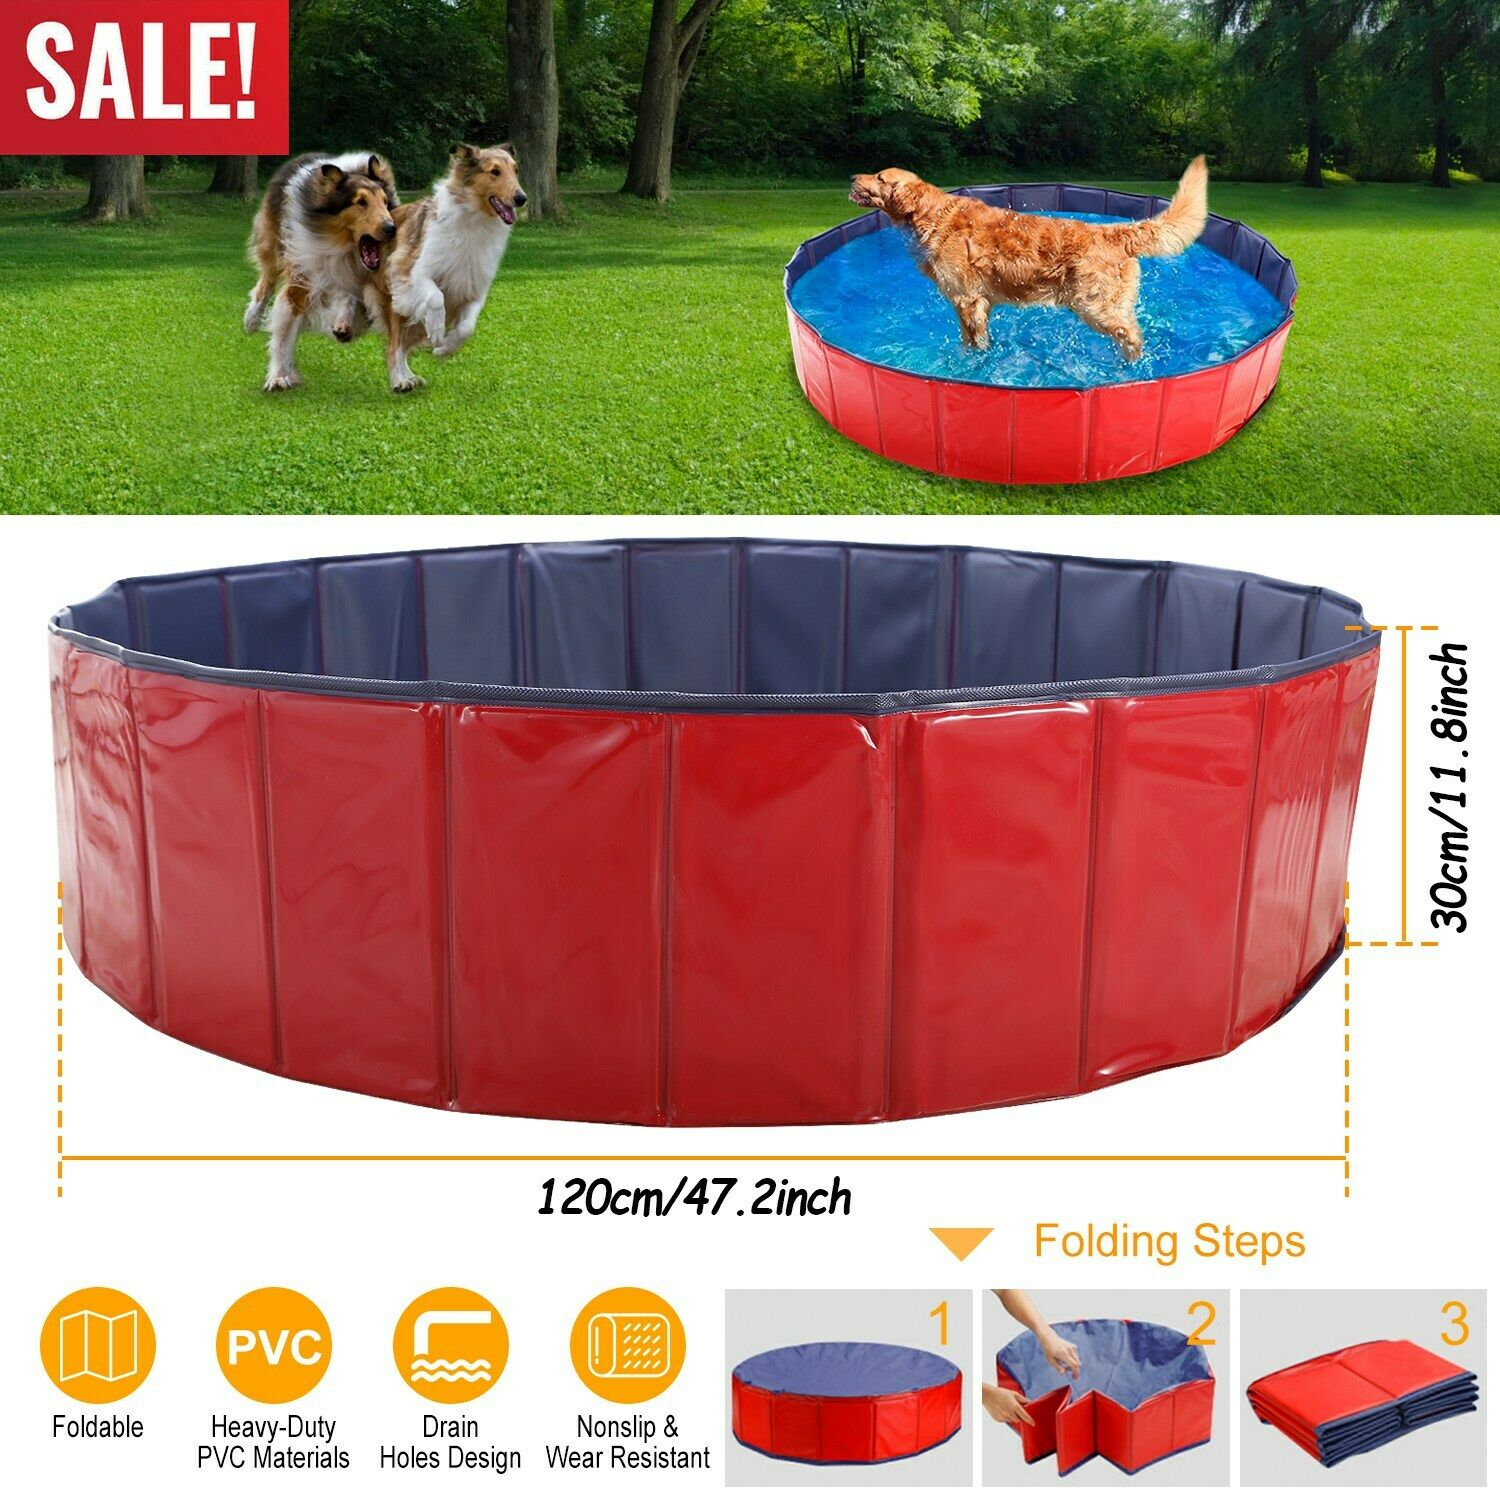 Bingpet Large Dog Swimming Pool Pet Bathtub Collapsible Puppy Bath Tub L Blue For Sale Online Ebay